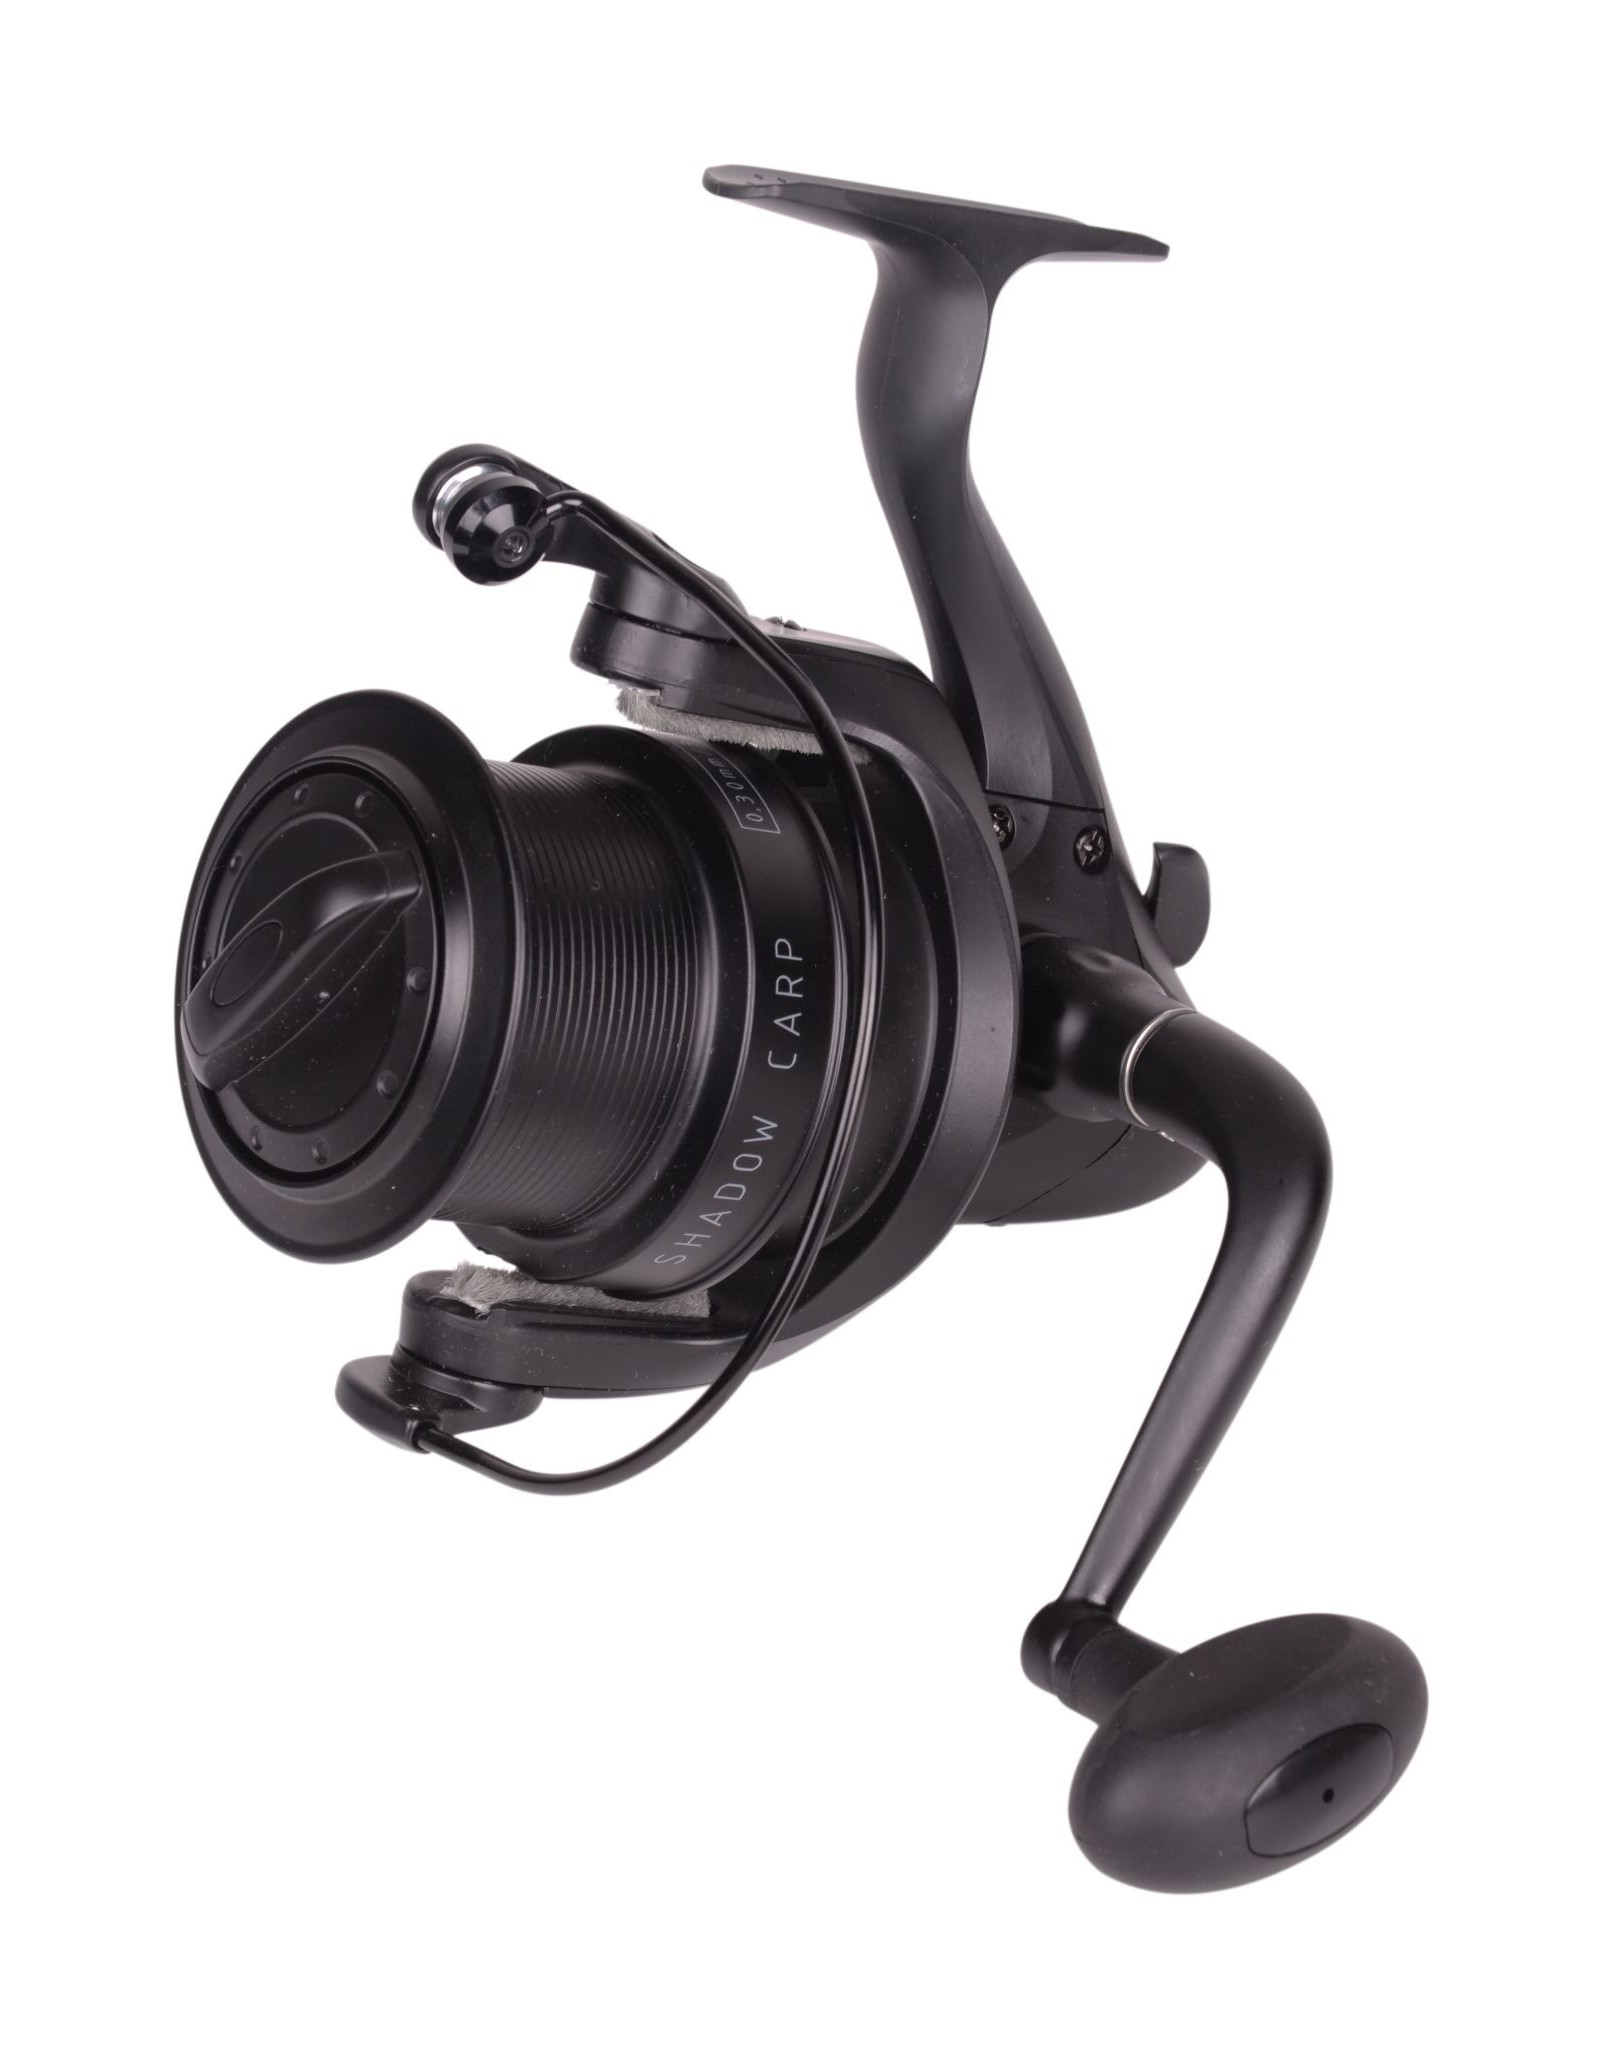 CTEC SHADOW CARP REEL 6500